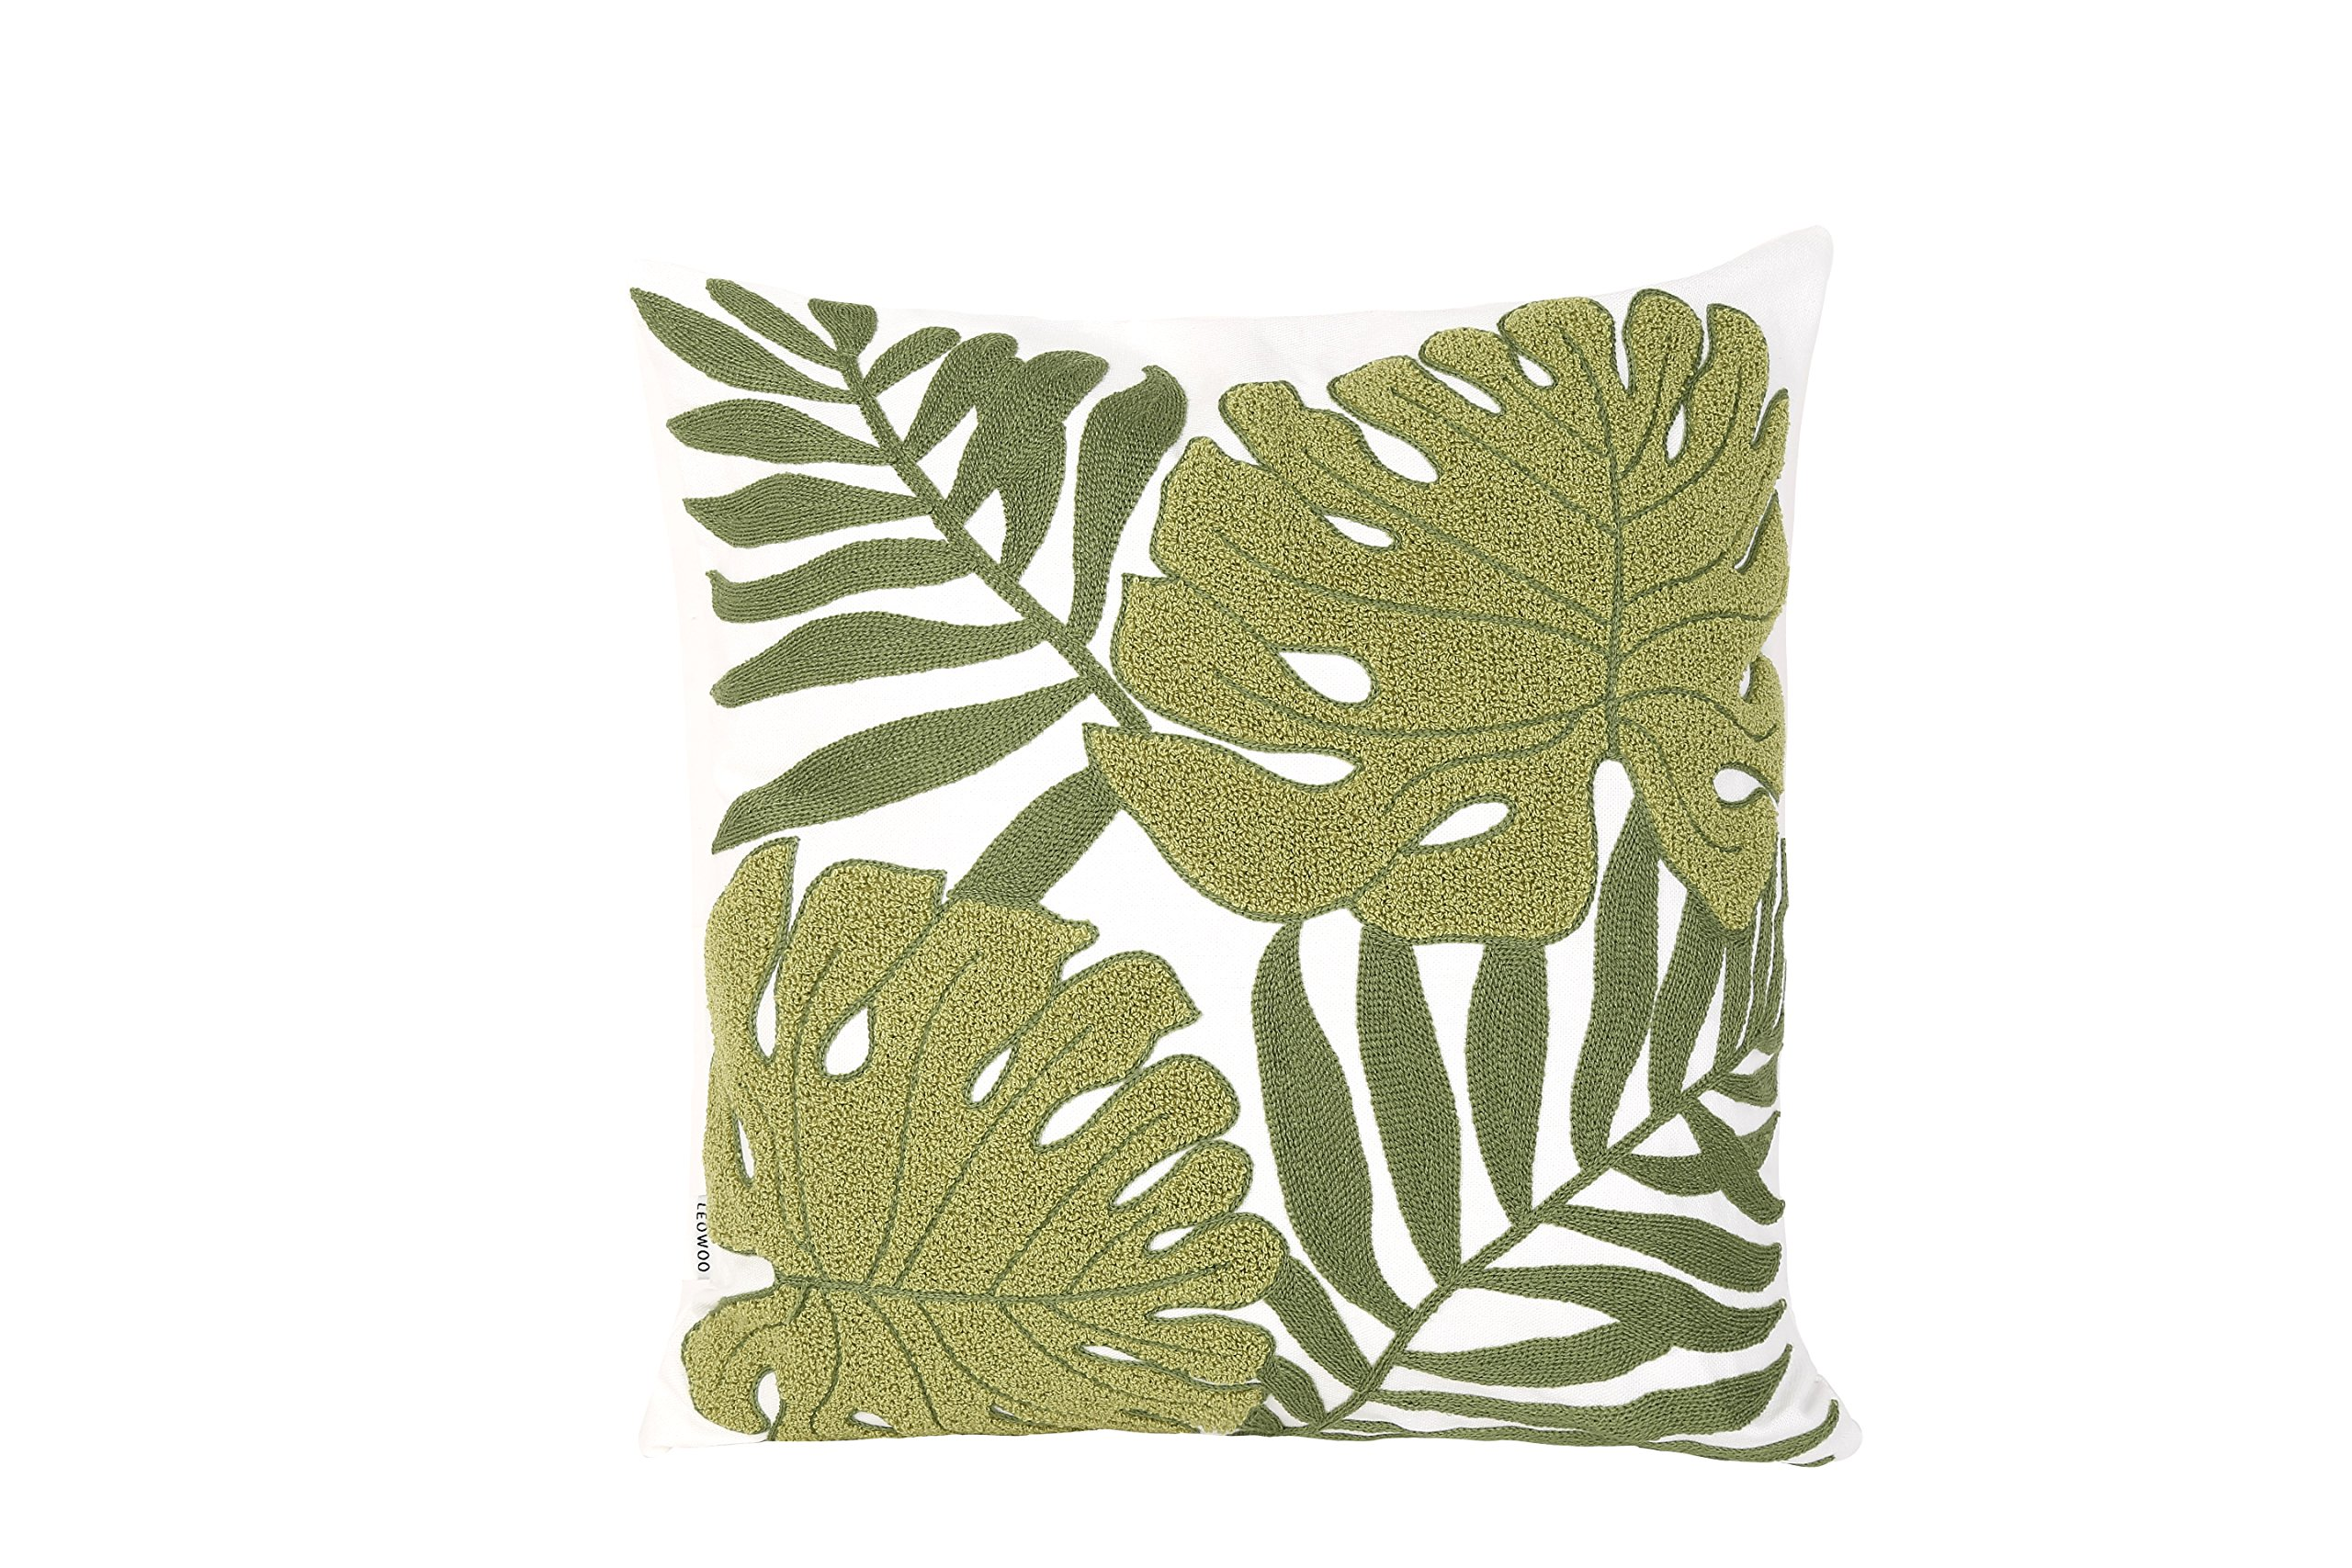 Leowoo Pillowcase Throw Pillow Cover Three Dimensional Embroidery Modern Natural Plant Leaves Cushion Covers 18 X18 45cm X45cm D Buy Online In Dominica At Dominica Desertcart Com Productid 104847281